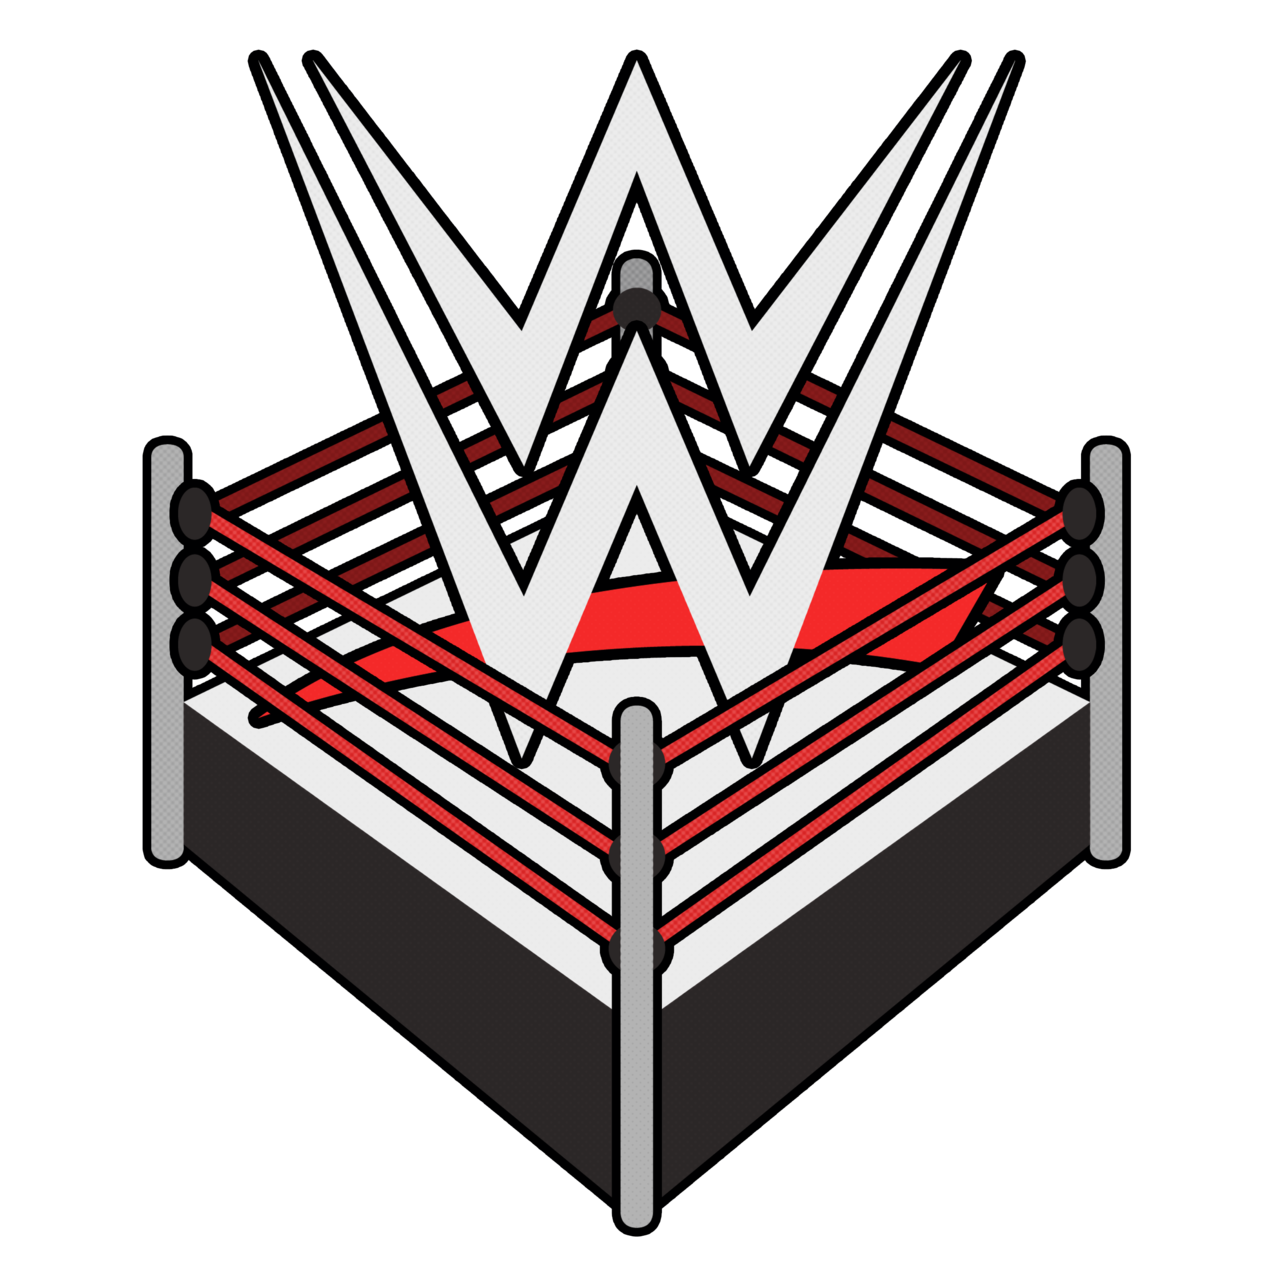 Wwe logo png free. Wrestlers clipart transparent background